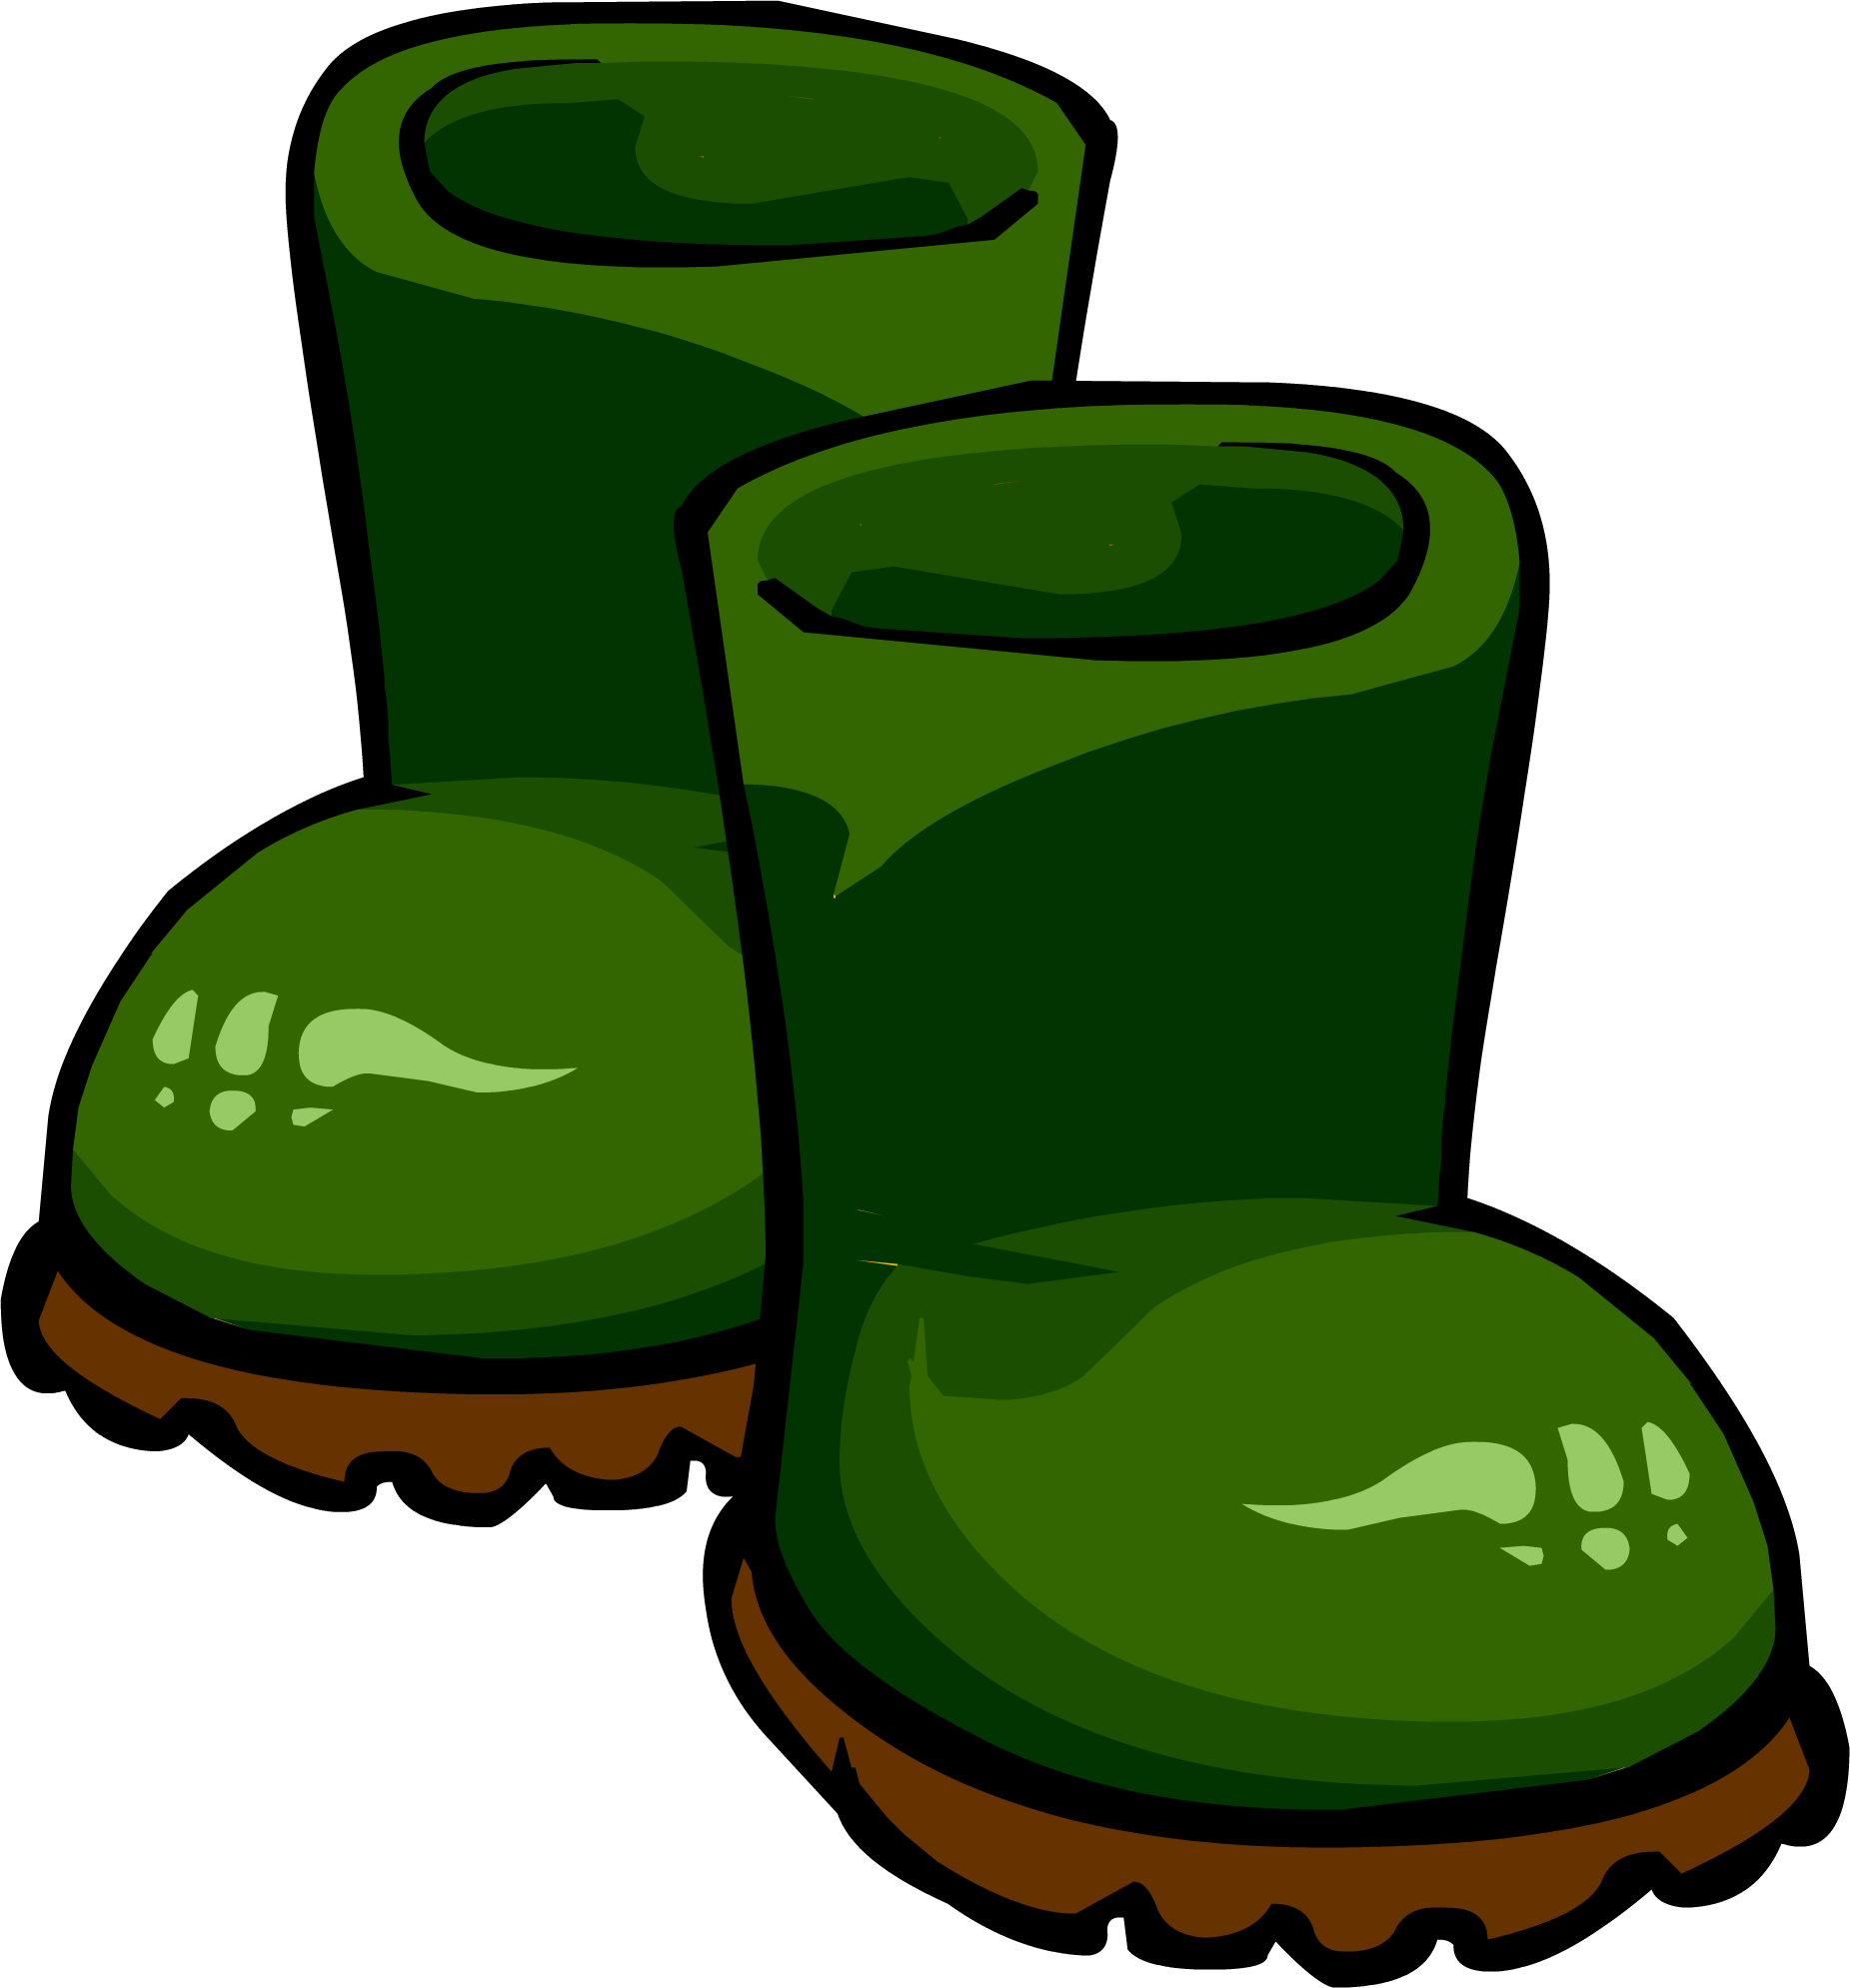 Rubber boots club penguin. Boot clipart green boot